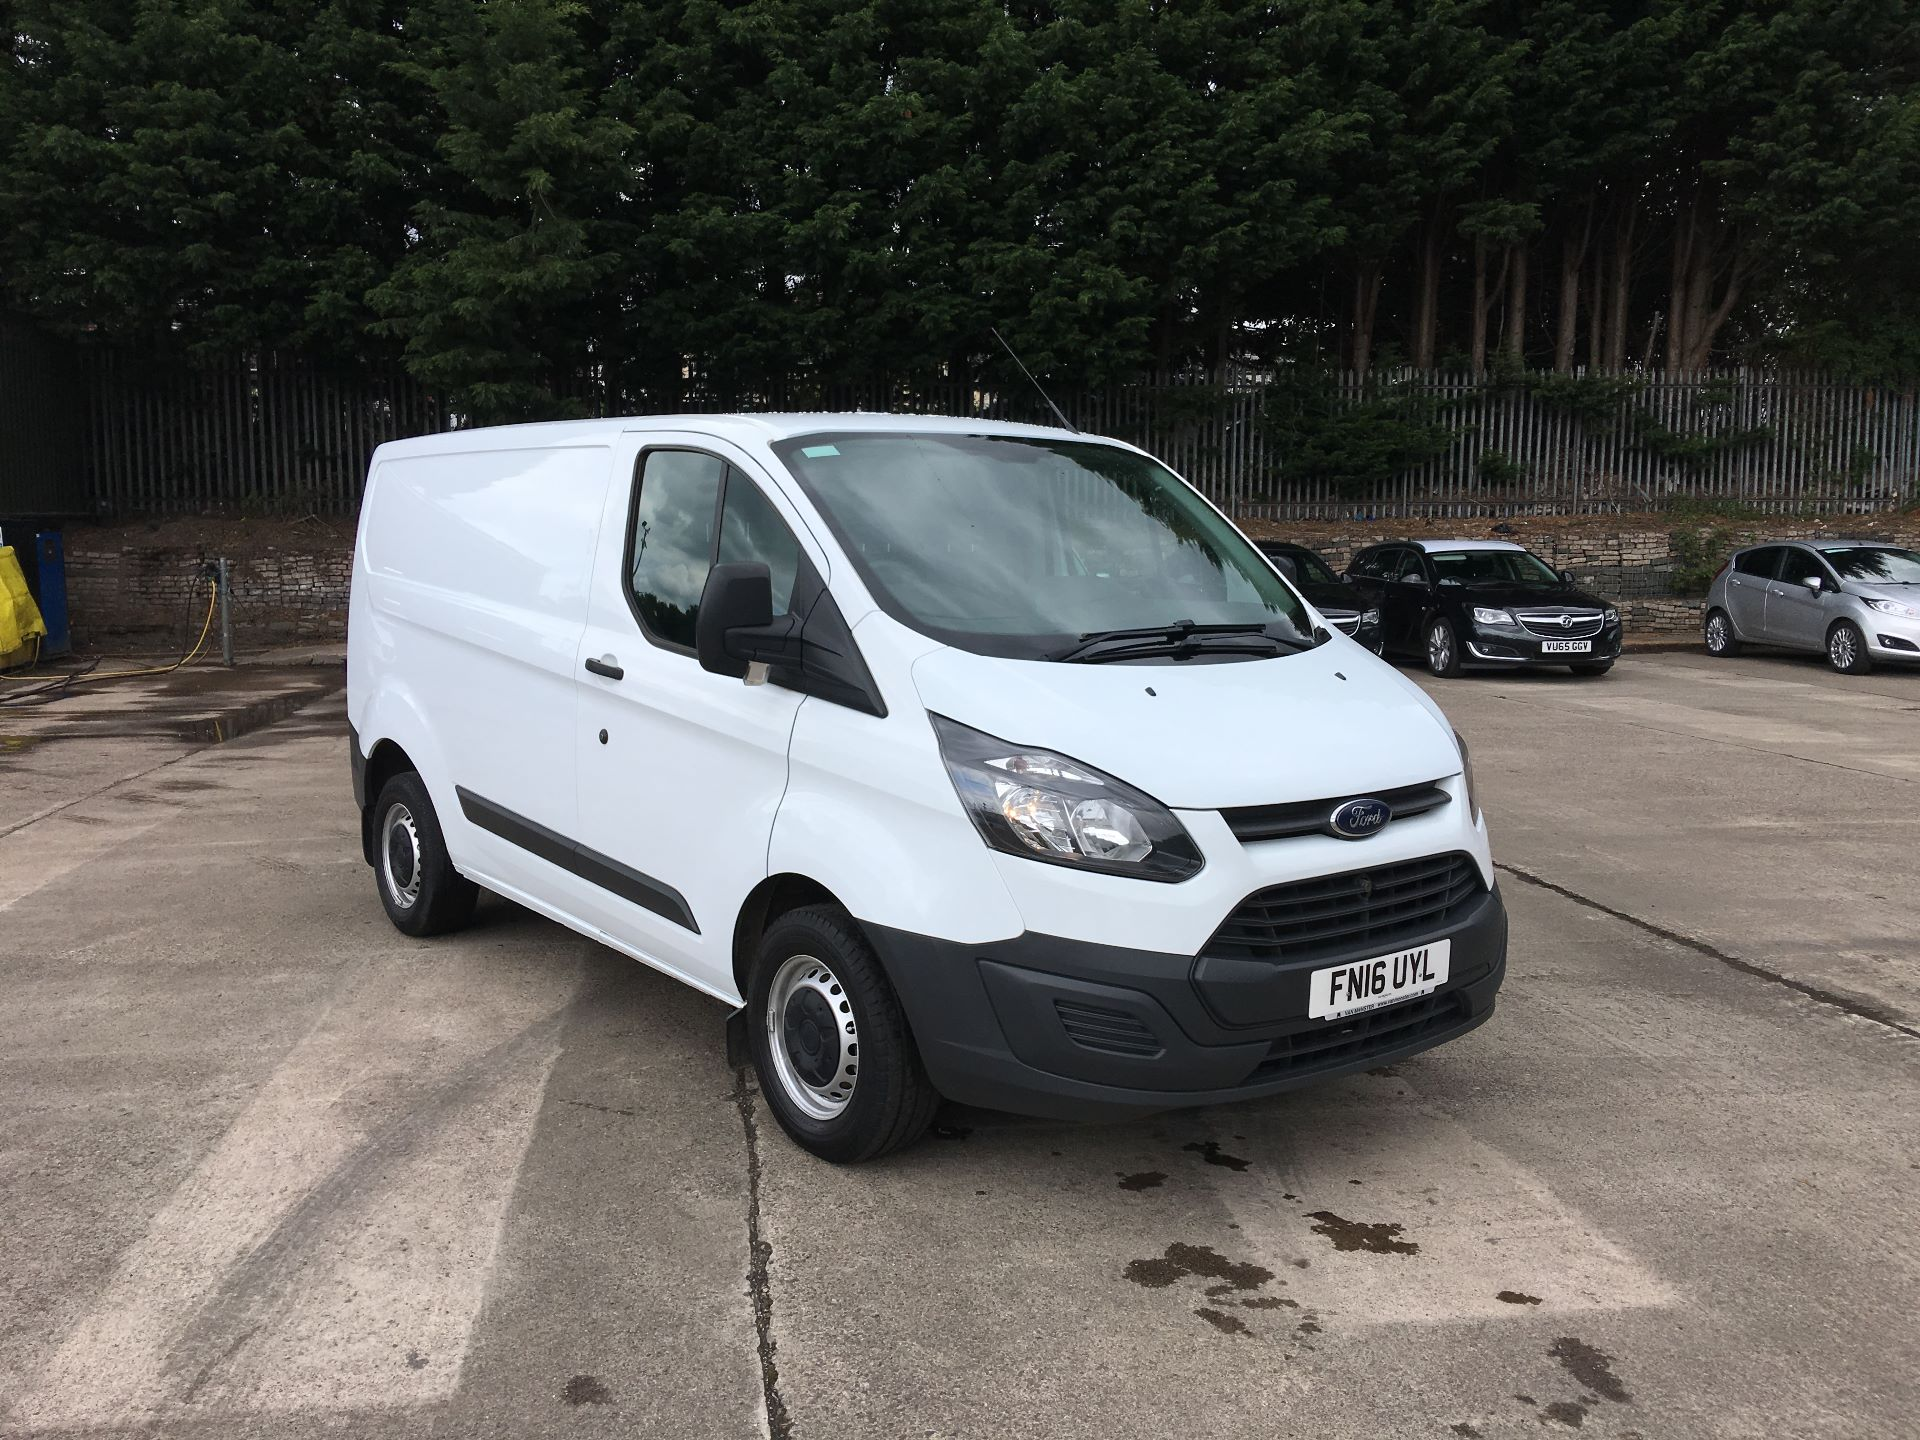 2016 Ford Transit Custom 290 L1 DIESEL FWD 2.2 TDCI 100PS LOW ROOF VAN EURO 5 (FN16UYL)